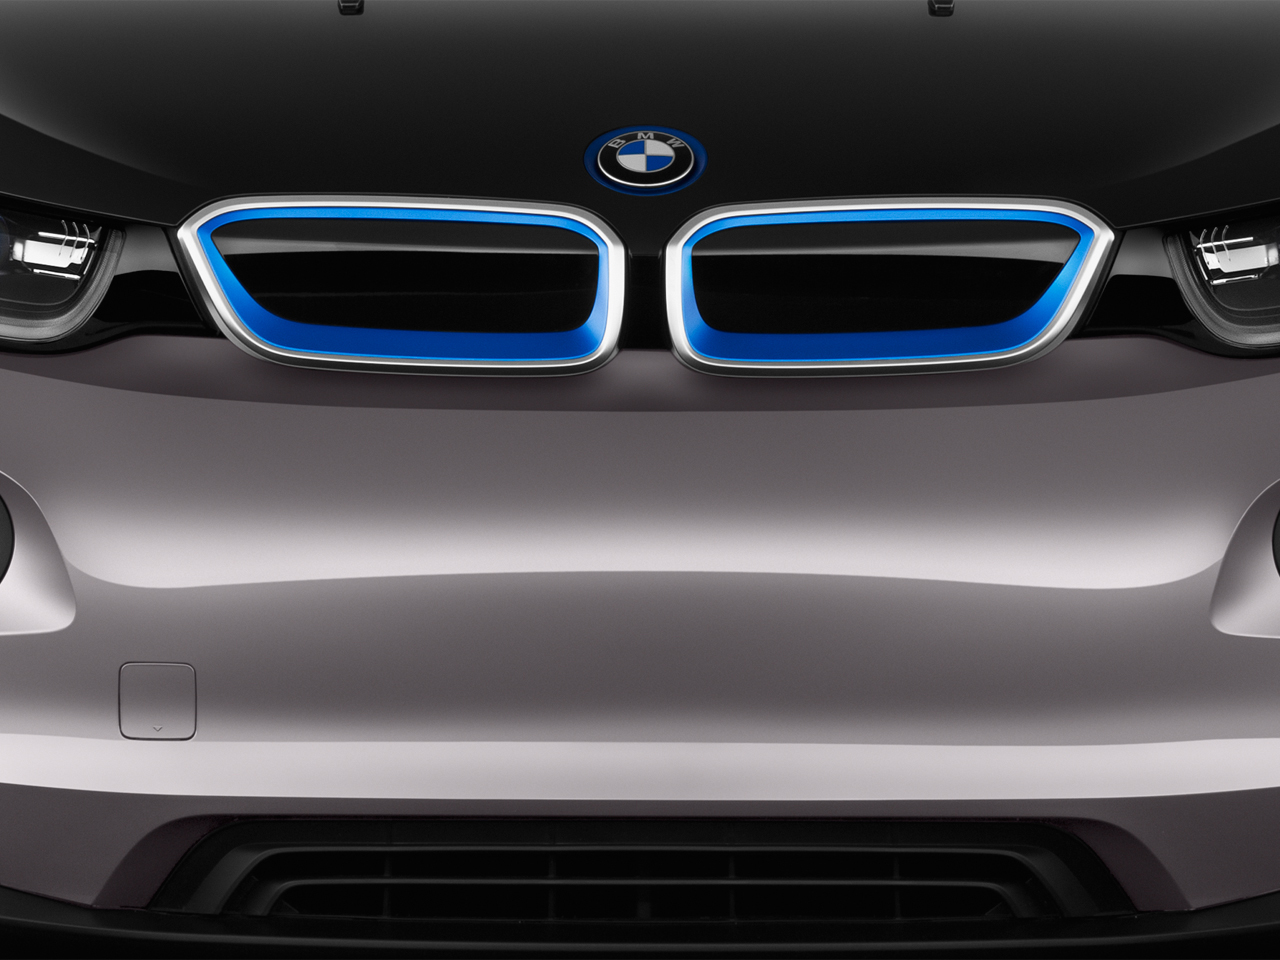 BMW i5 electric crossover SUV in 2019: latest rumor-mill ...